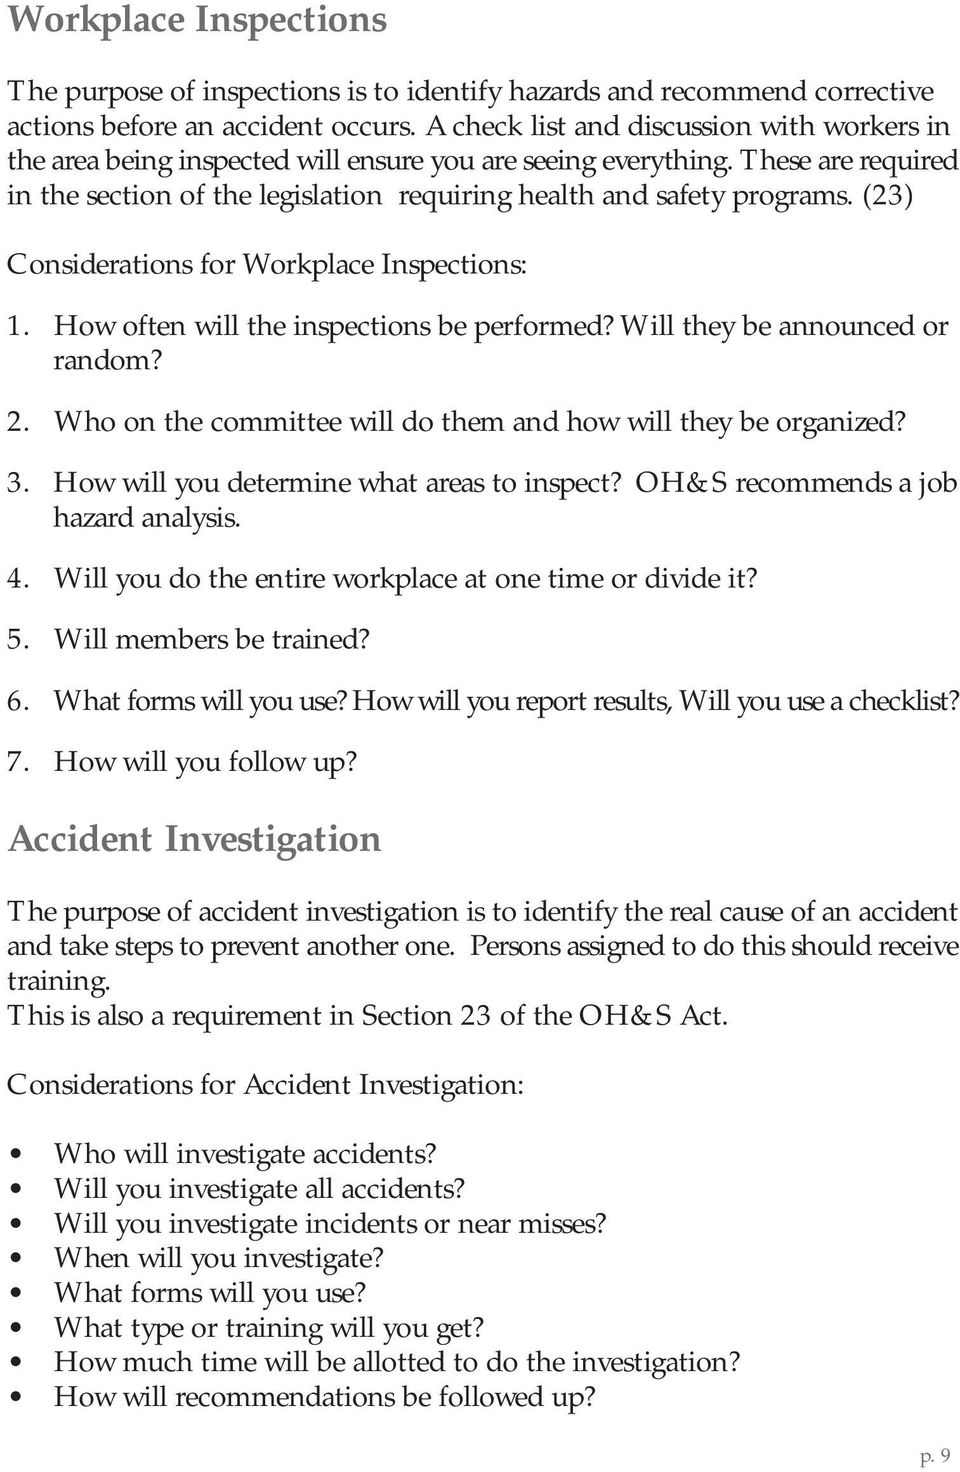 (23) Considerations for Workplace Inspections: 1. How often will the inspections be performed? Will they be announced or random? 2. Who on the committee will do them and how will they be organized? 3.